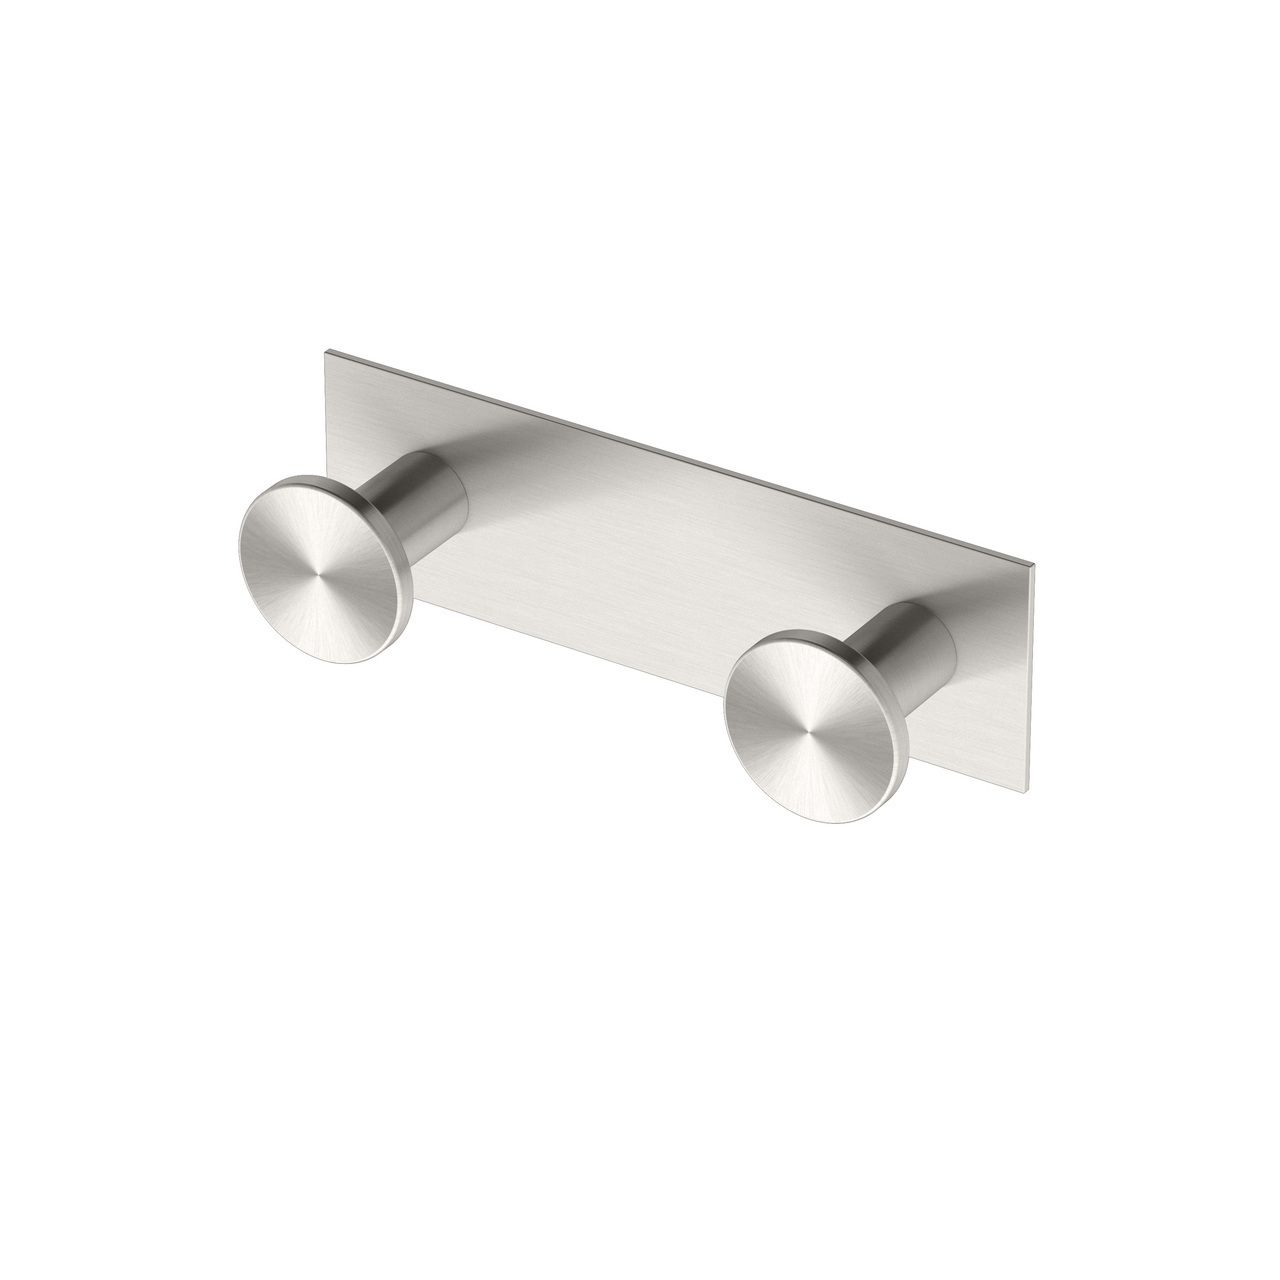 All Modern Decor Double Hook Square in Satin Nickel